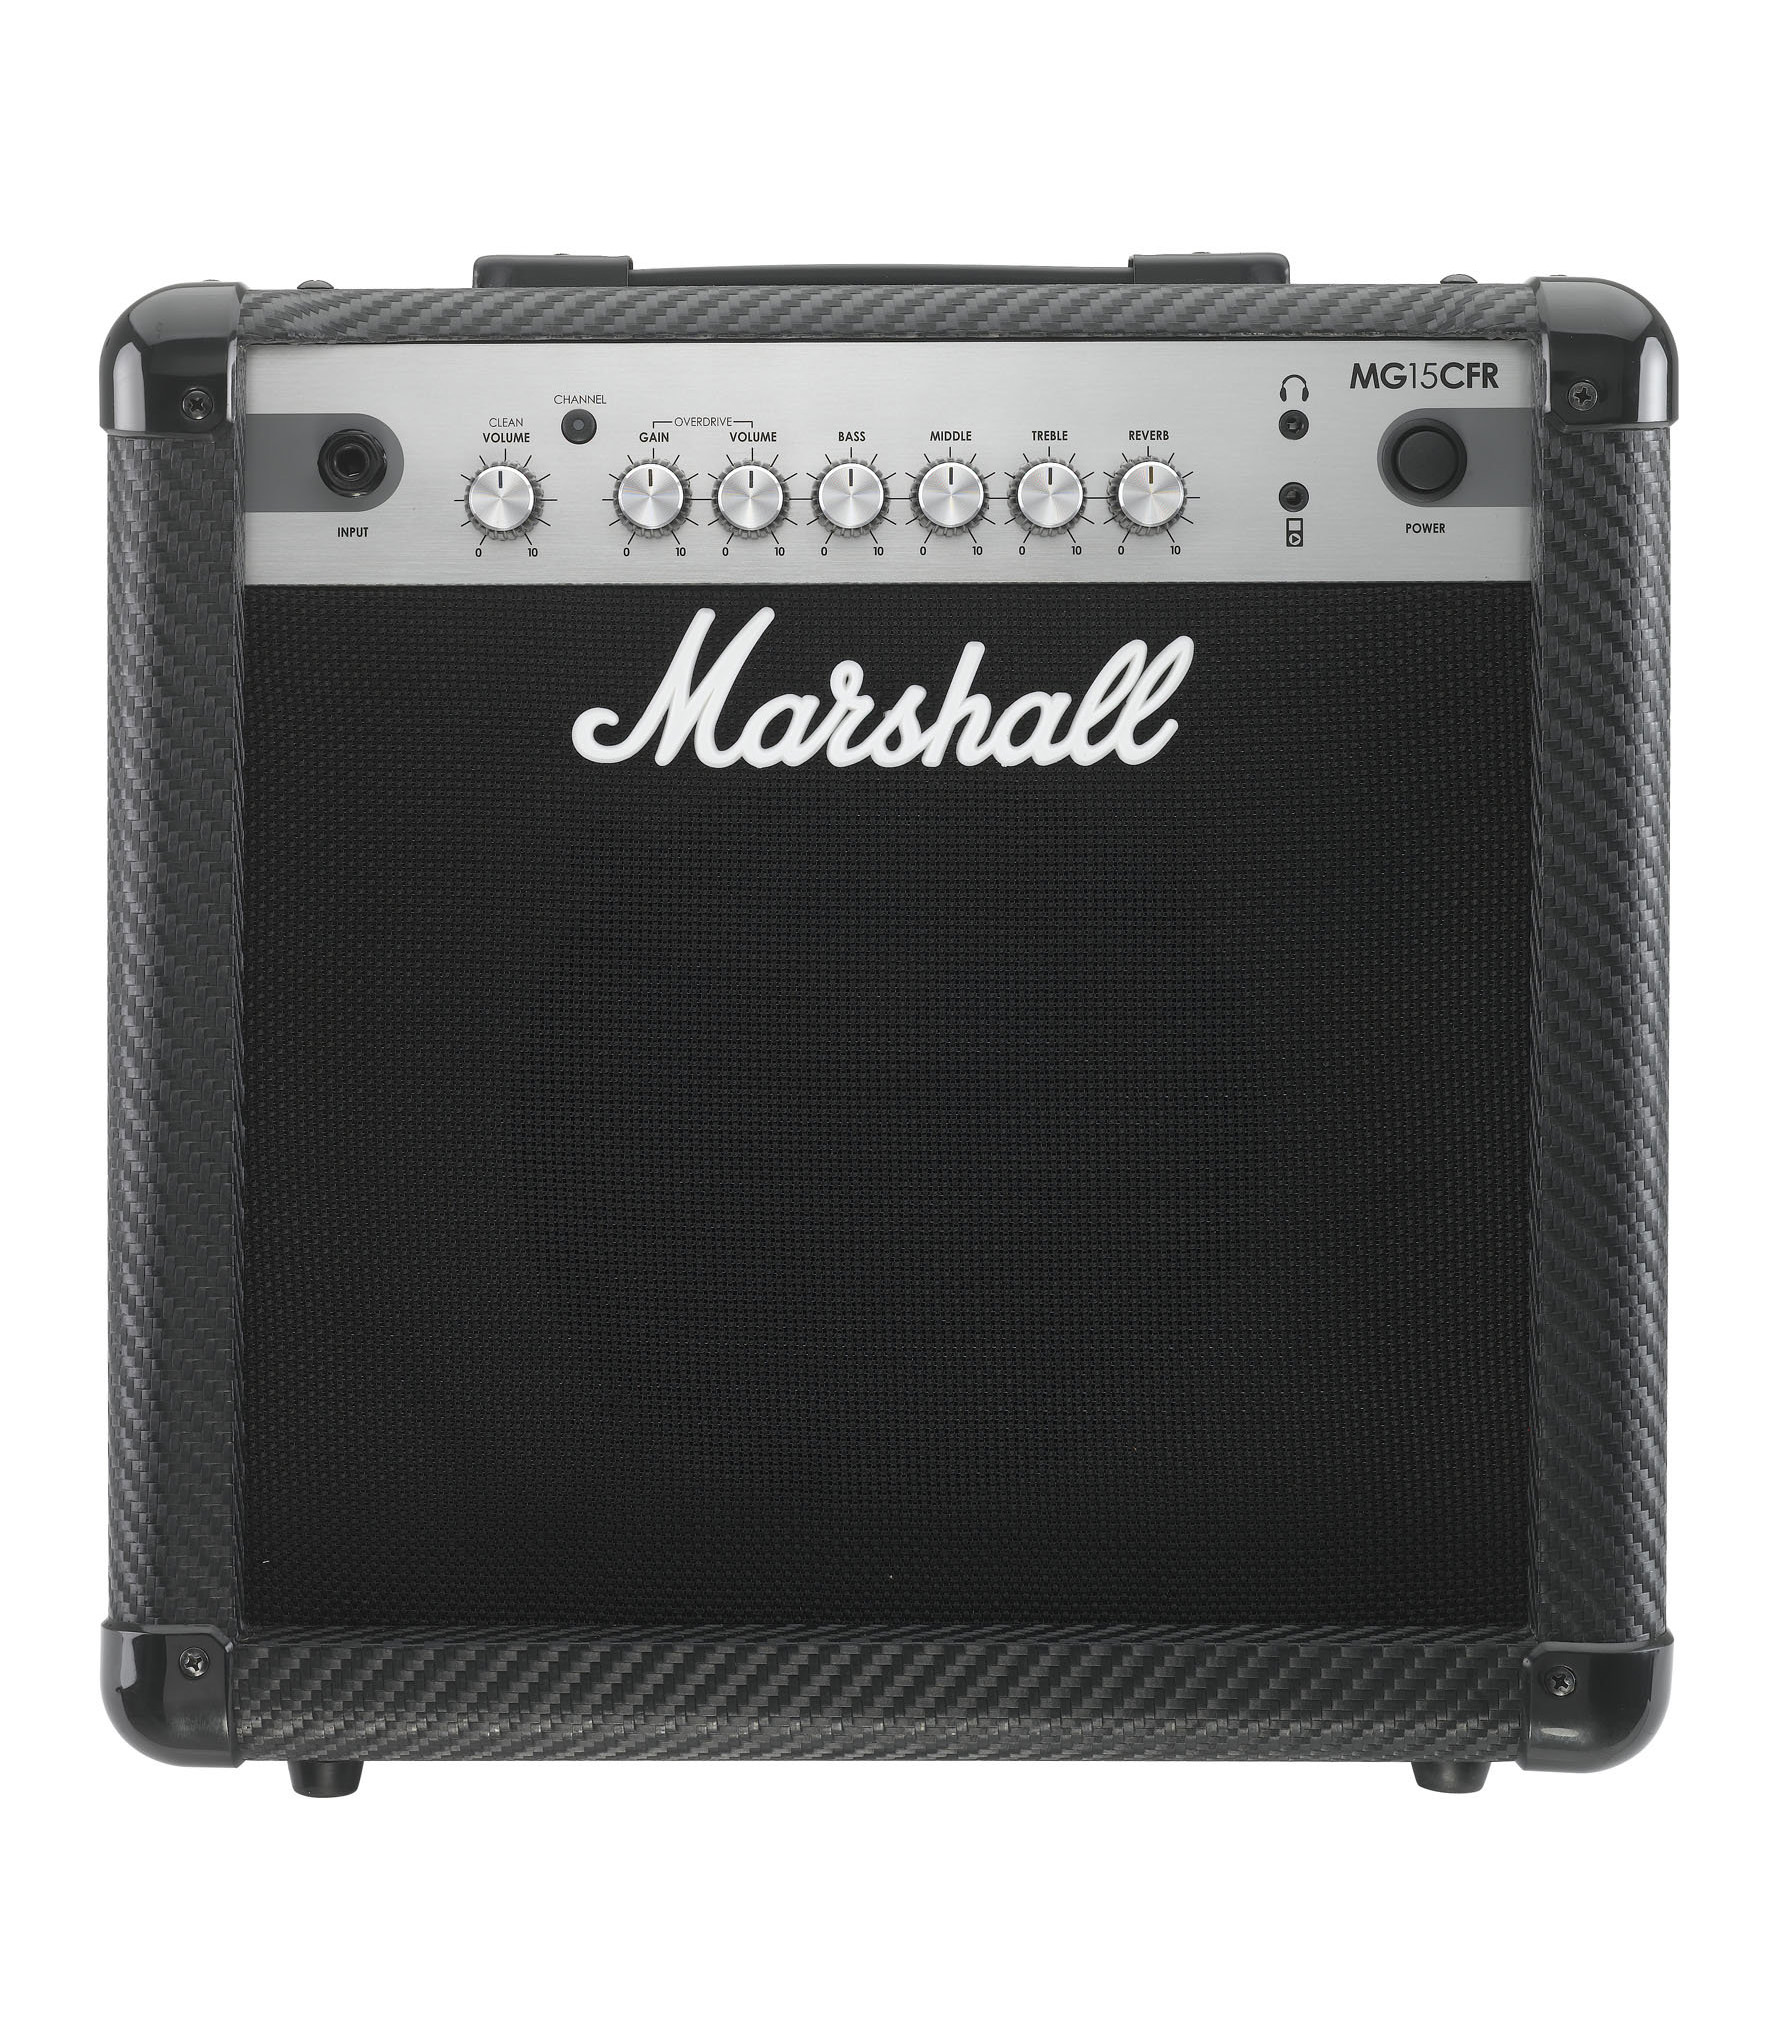 Buy marshall - MG15CFR Solid state Guitar Amp 2 Channe